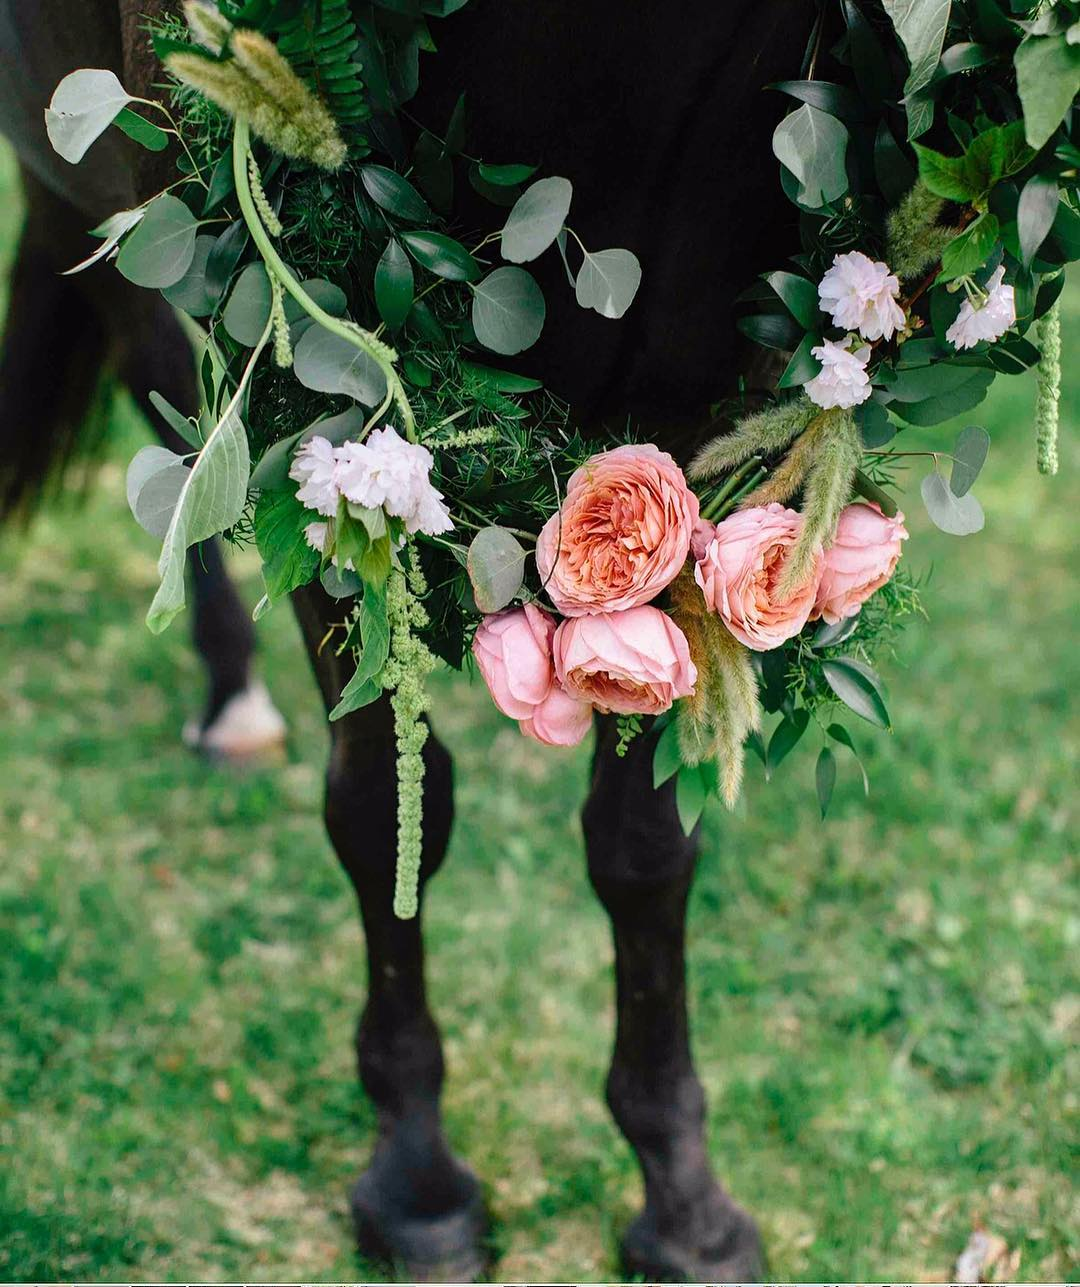 {wedding necklace} photo | @kate_preftakes  styling/coordination | @eventsbysorrell . . #horsedecor #horse #weddinghorse #handsome #necklace #floralwreath #forhim #weddingdesign #styledshoot #collaboration #flowerfun #weddingdecor #lotusfloraldesigns #weddingflowers #wedding #love